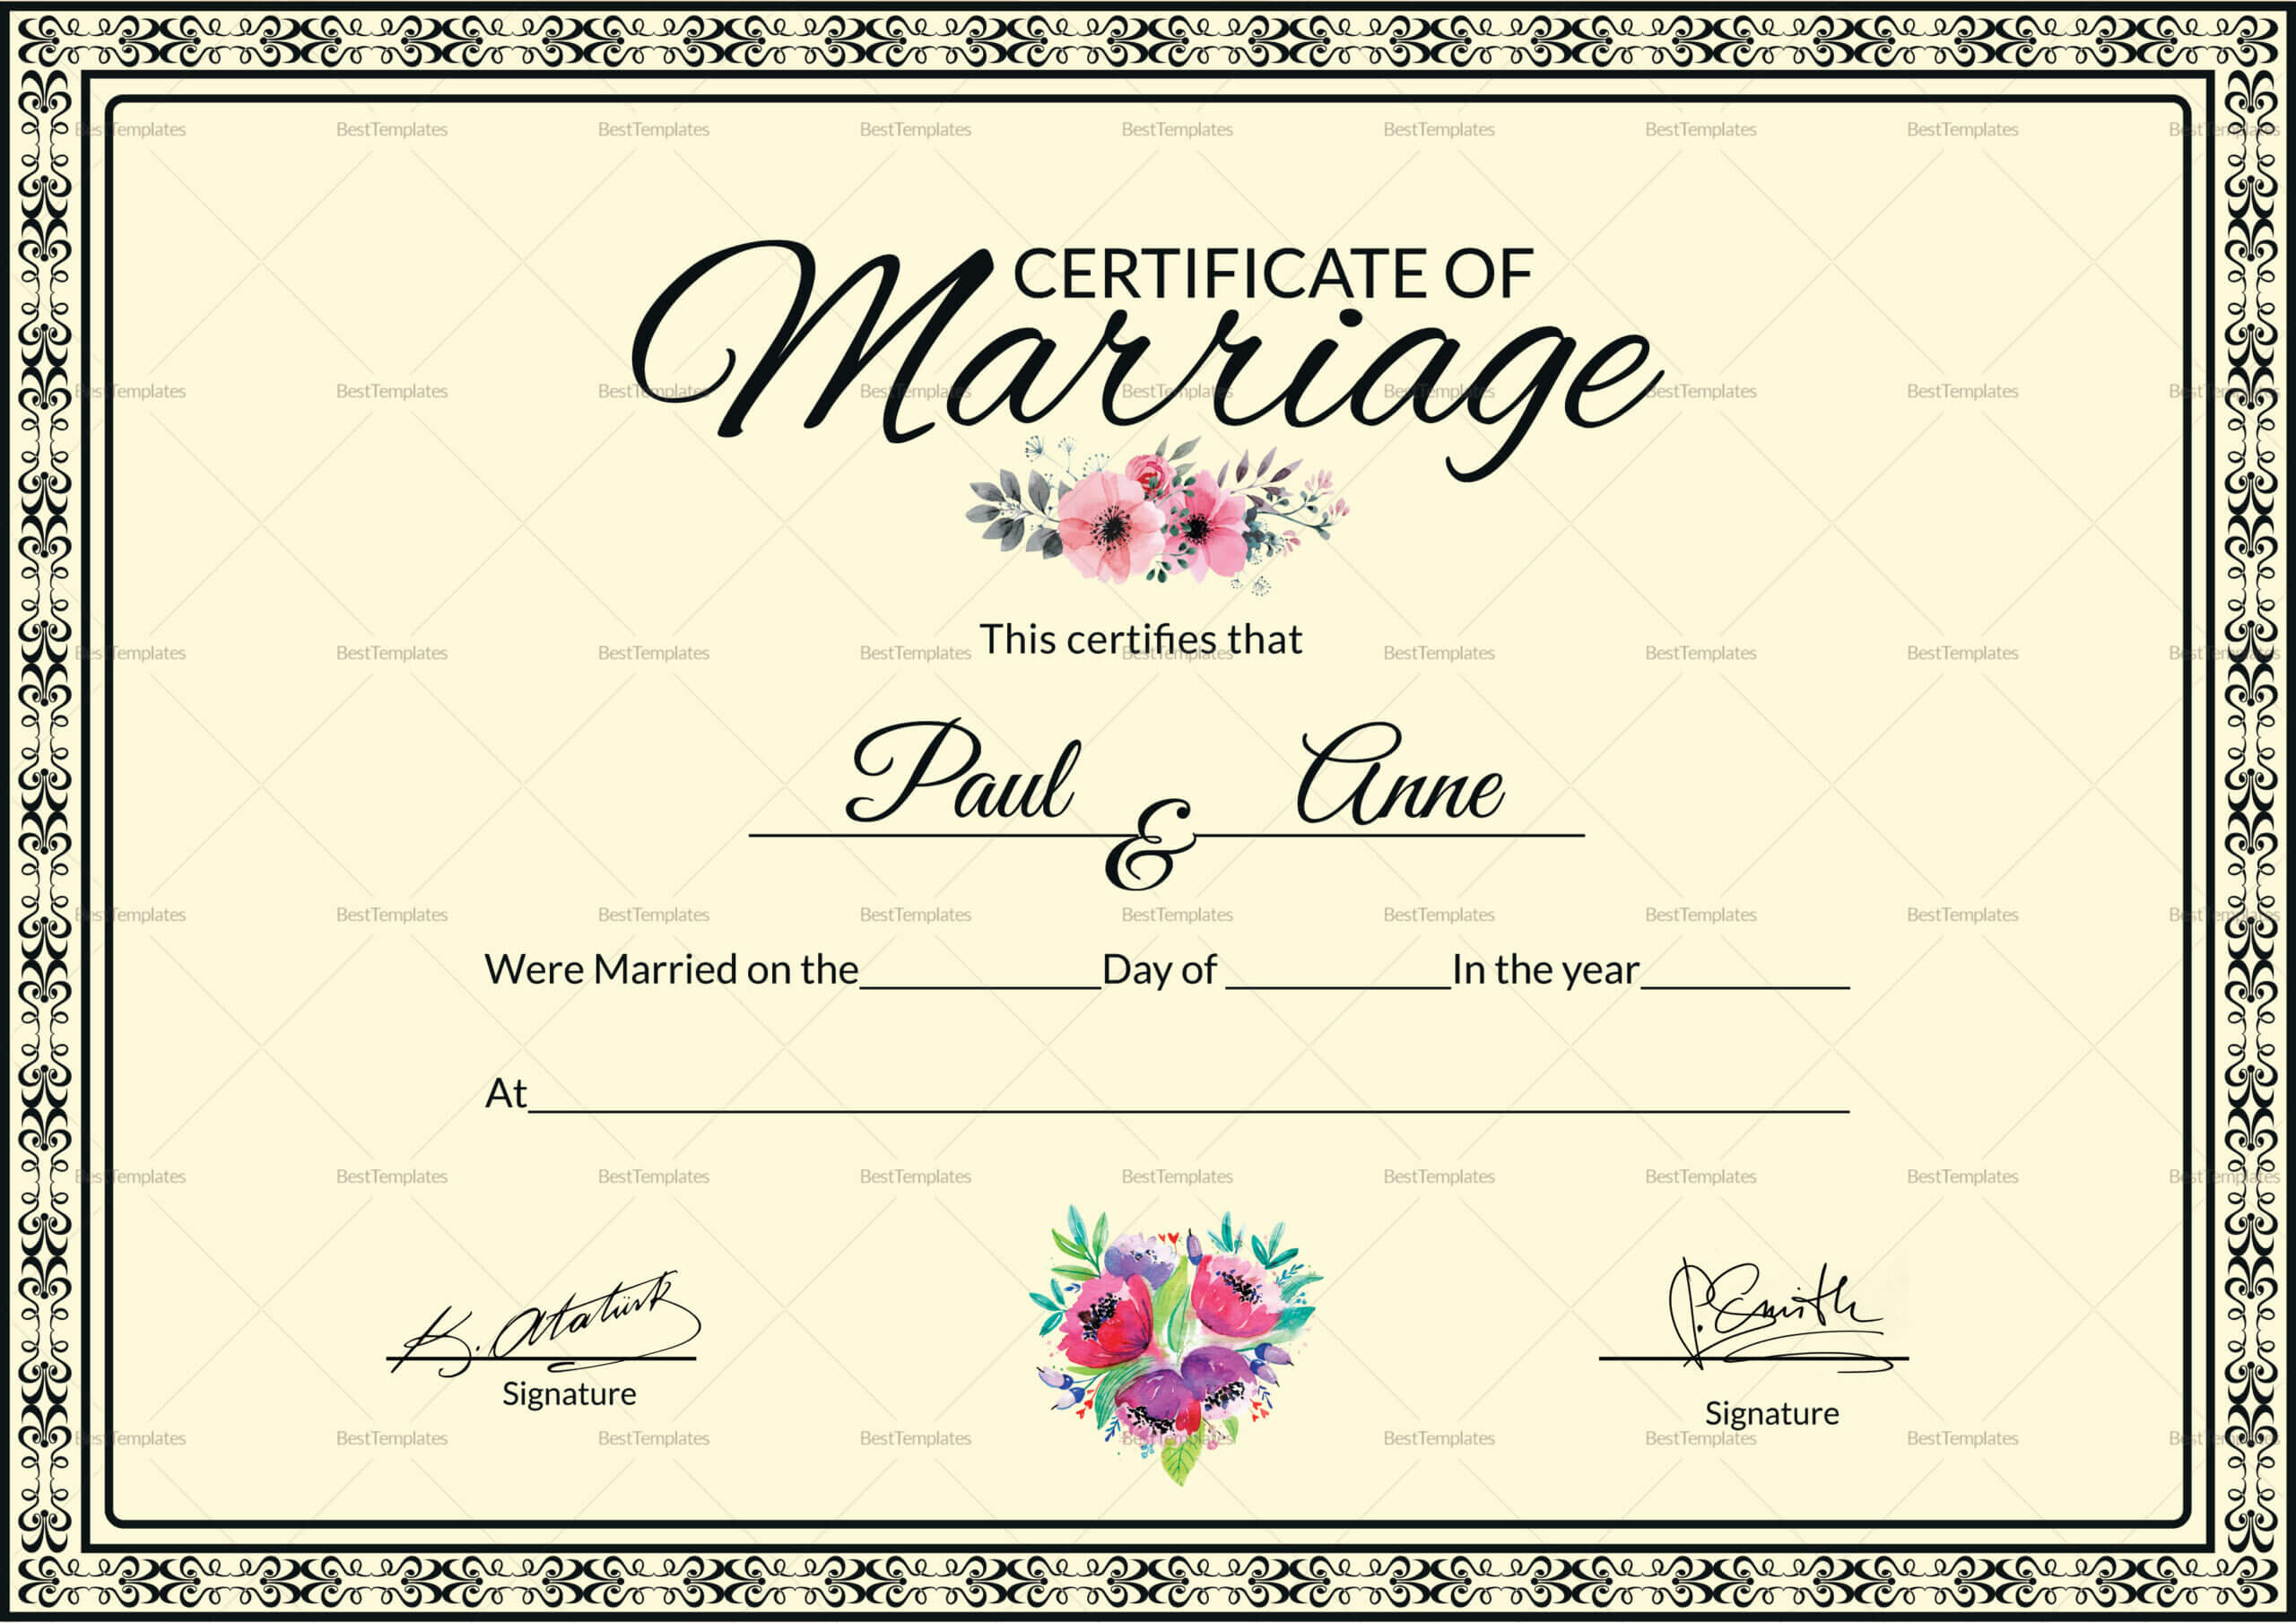 002 Template Ideas Certificate Of Marriage Beautiful Throughout Certificate Of Marriage Template